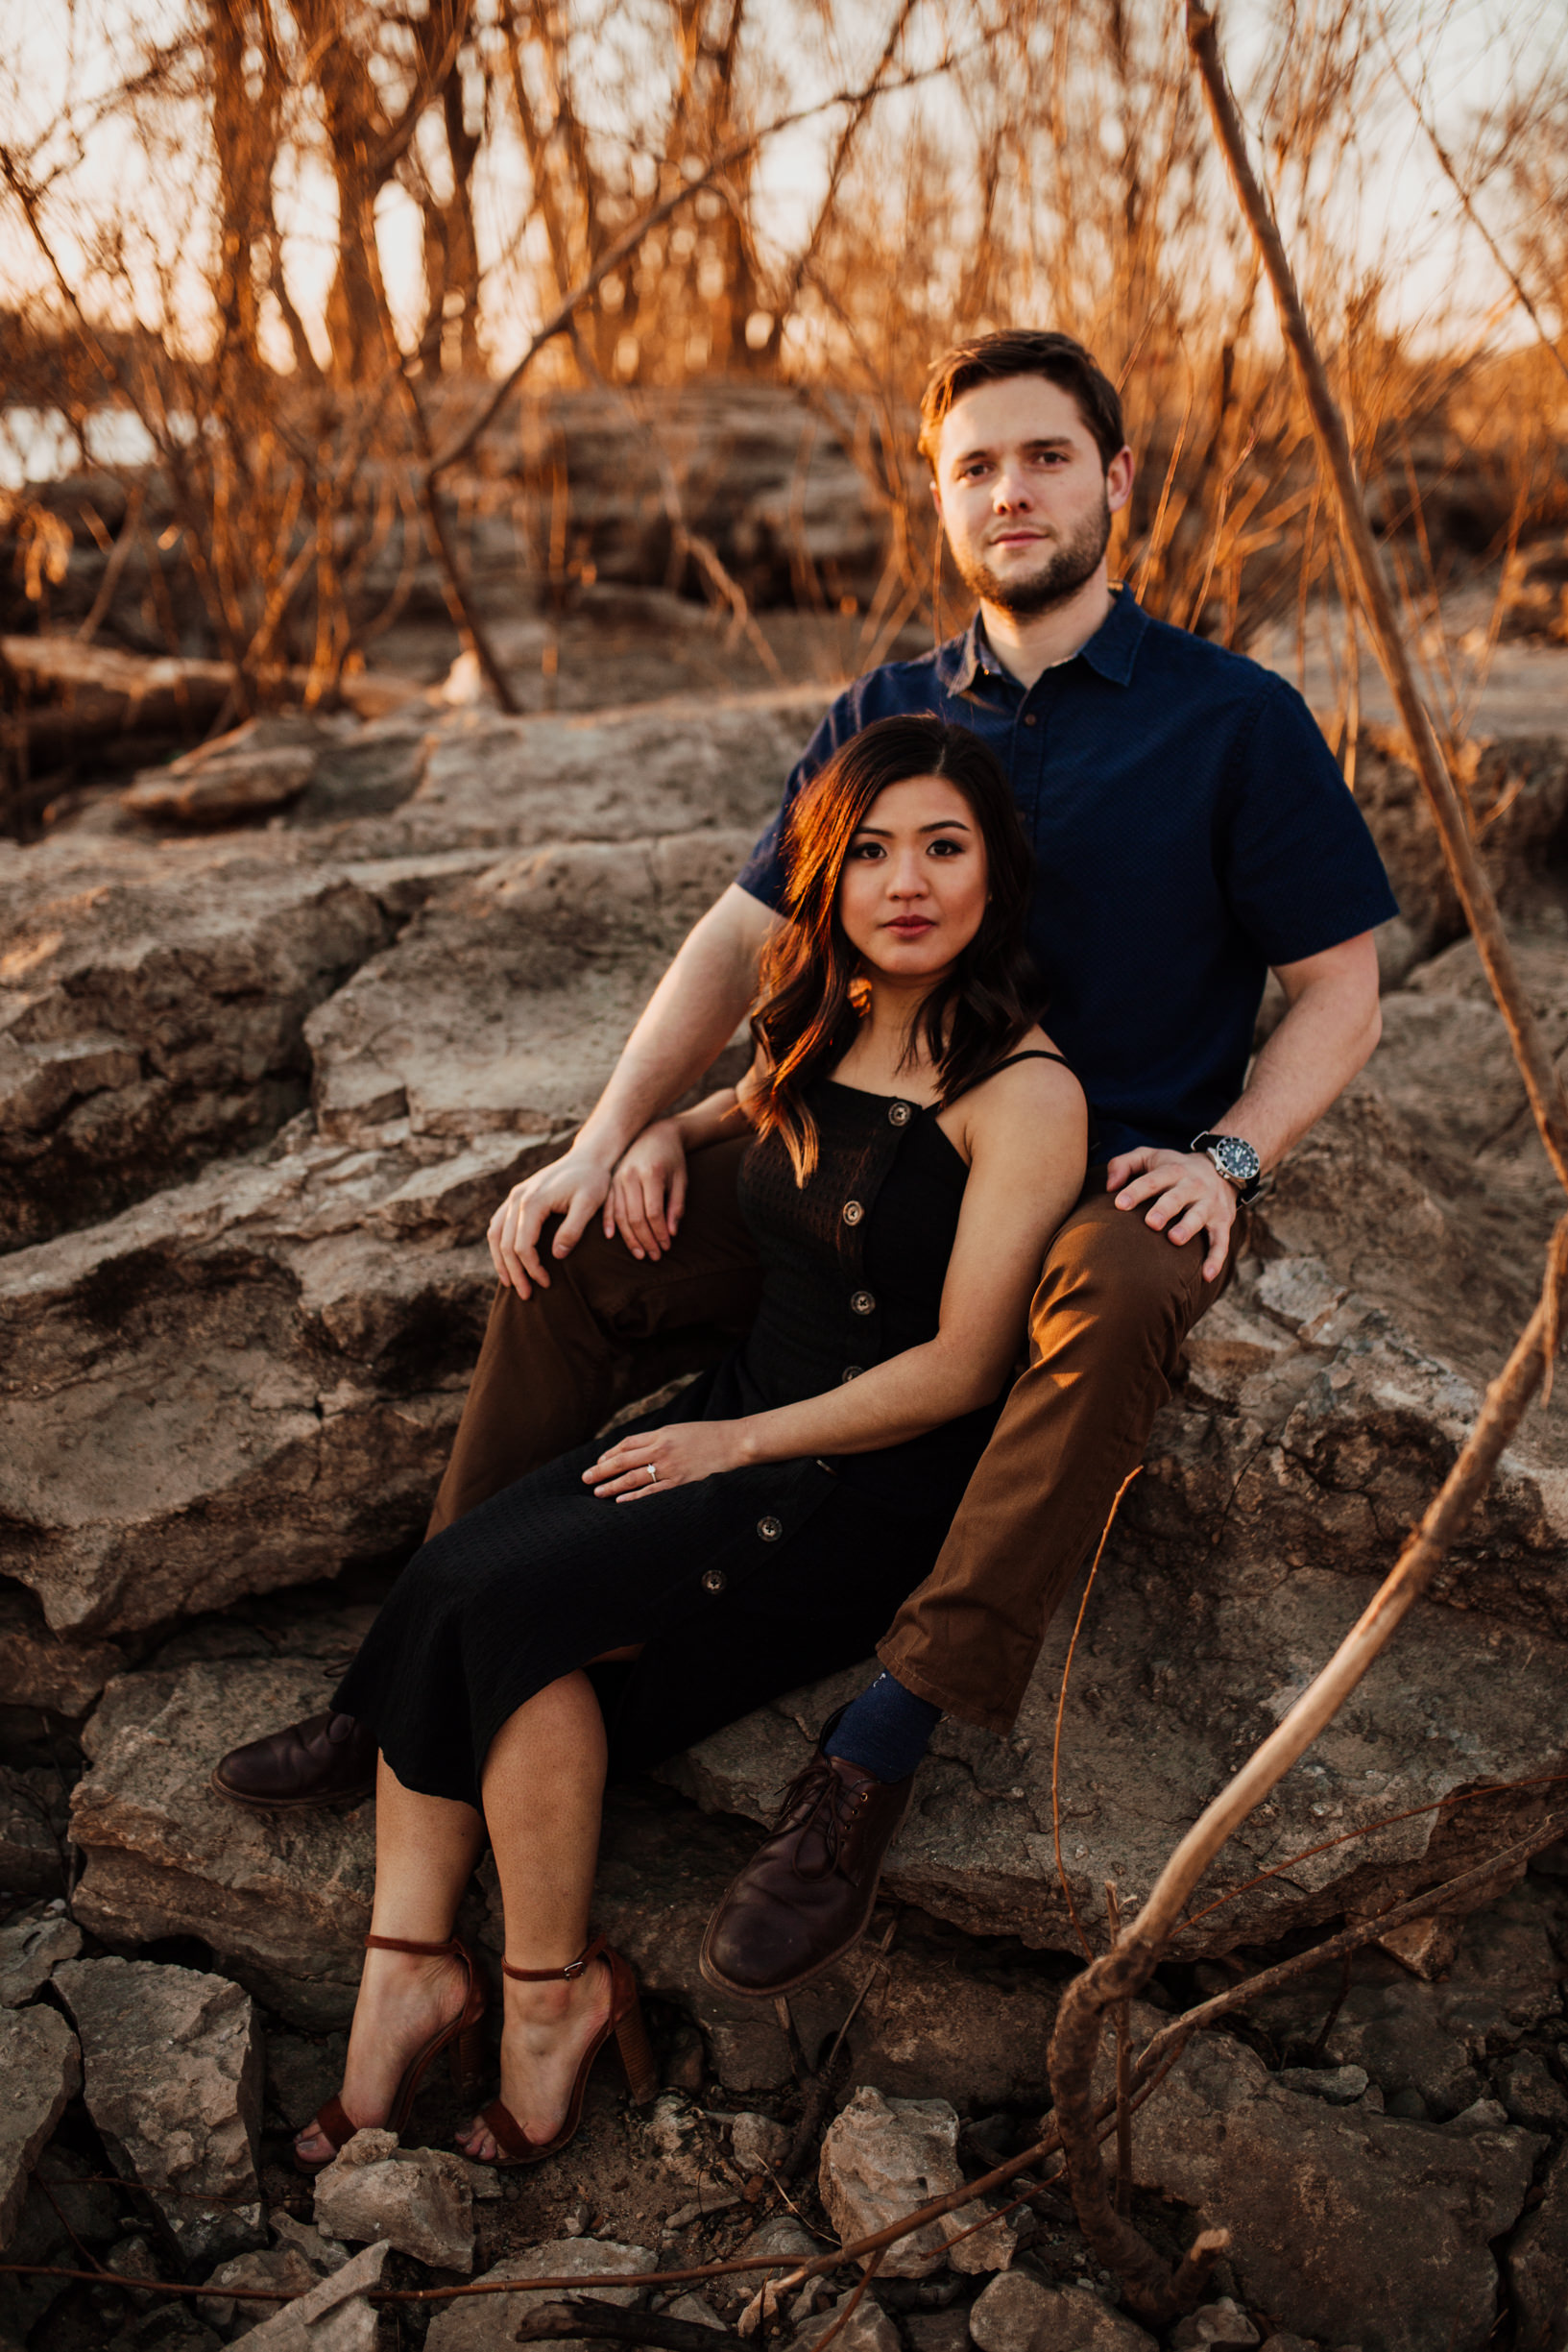 louisville-engagement-photographer-crystal-ludwick-photo-tammy-and-caleb-engagement-photography (5 of 32).jpg